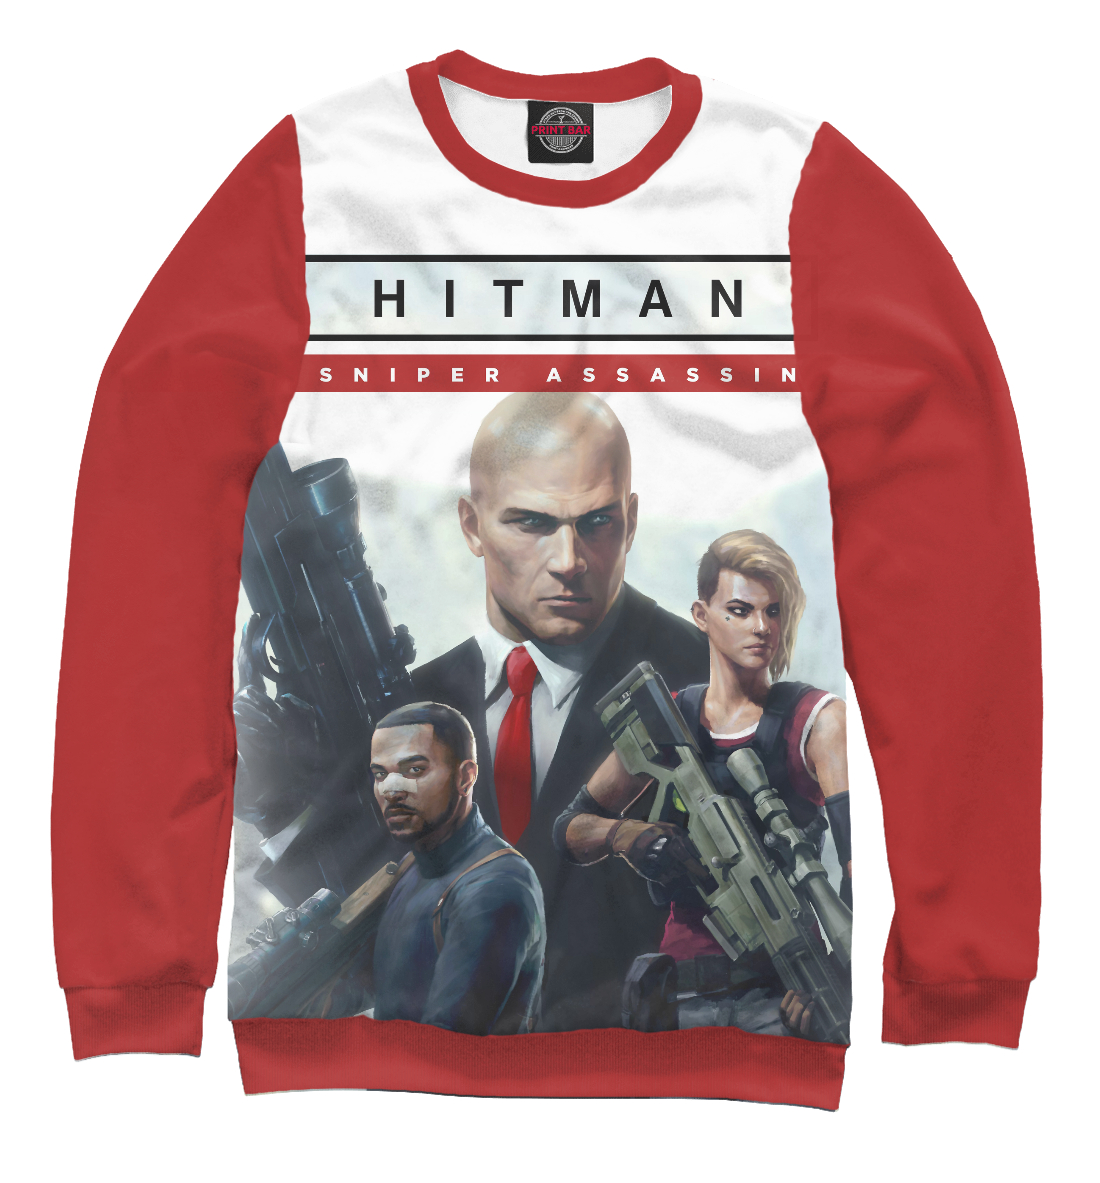 Купить Hitman sniper assassin, Printbar, Свитшоты, HTM-371499-swi-2